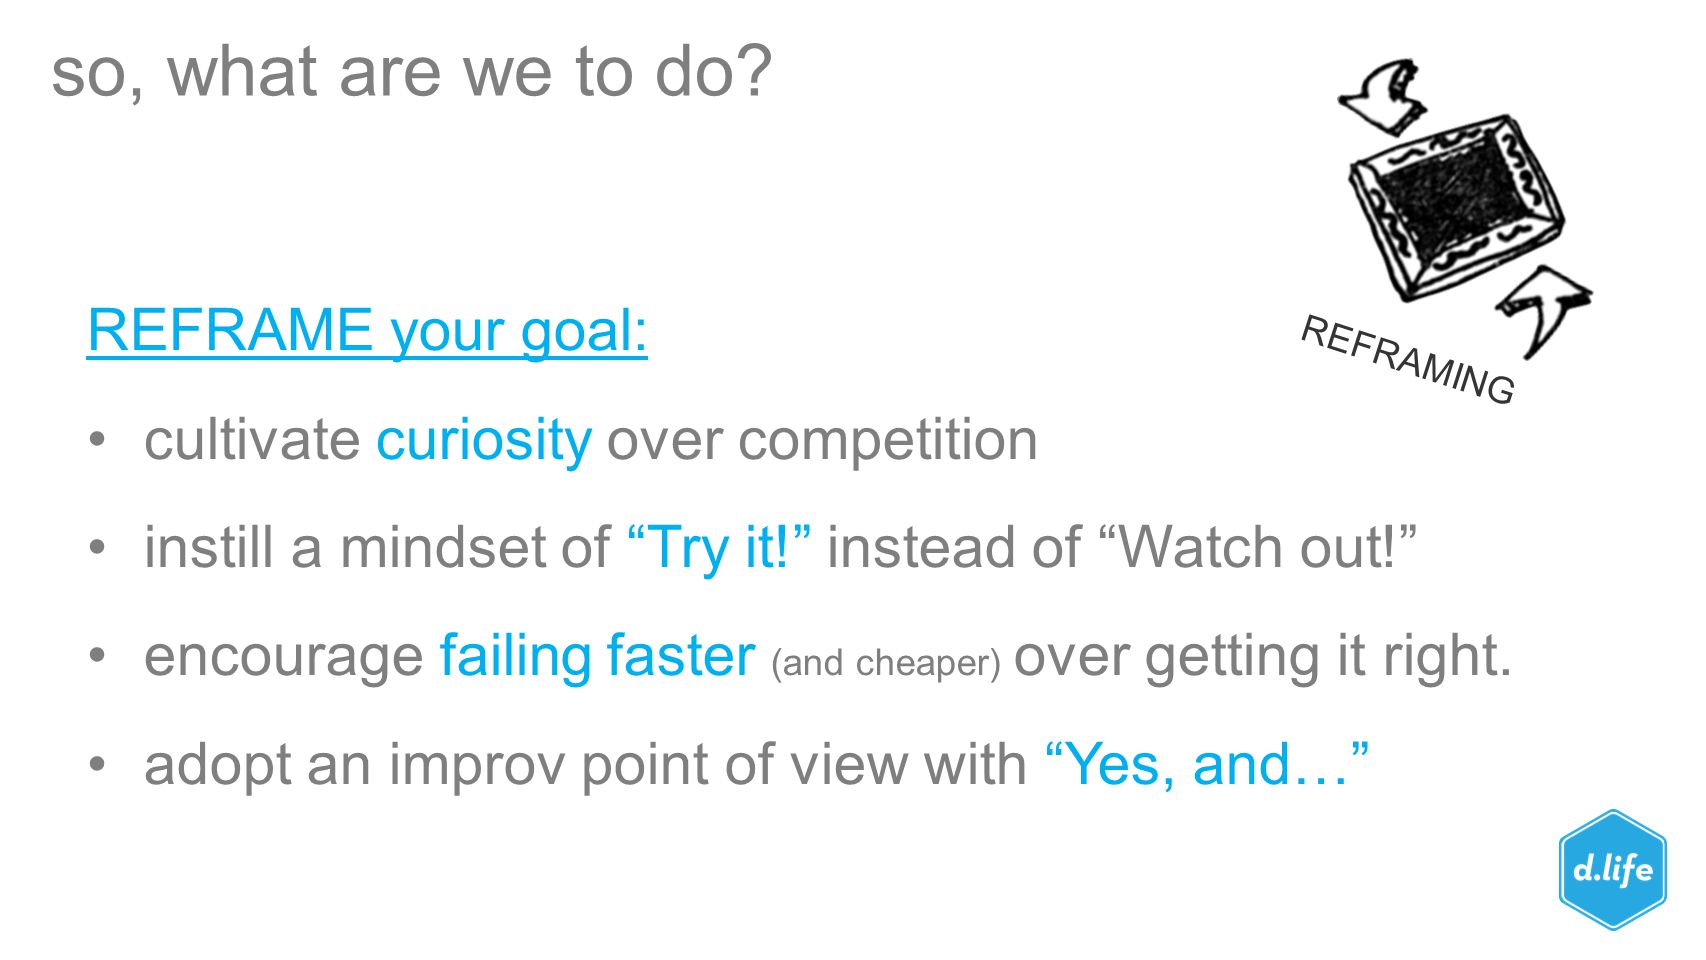 """so, what are we to do? REFRAME your goal: cultivate curiosity over competition instill a mindset of """"Try it!"""" instead of """"Watch out!"""" encourage failin"""